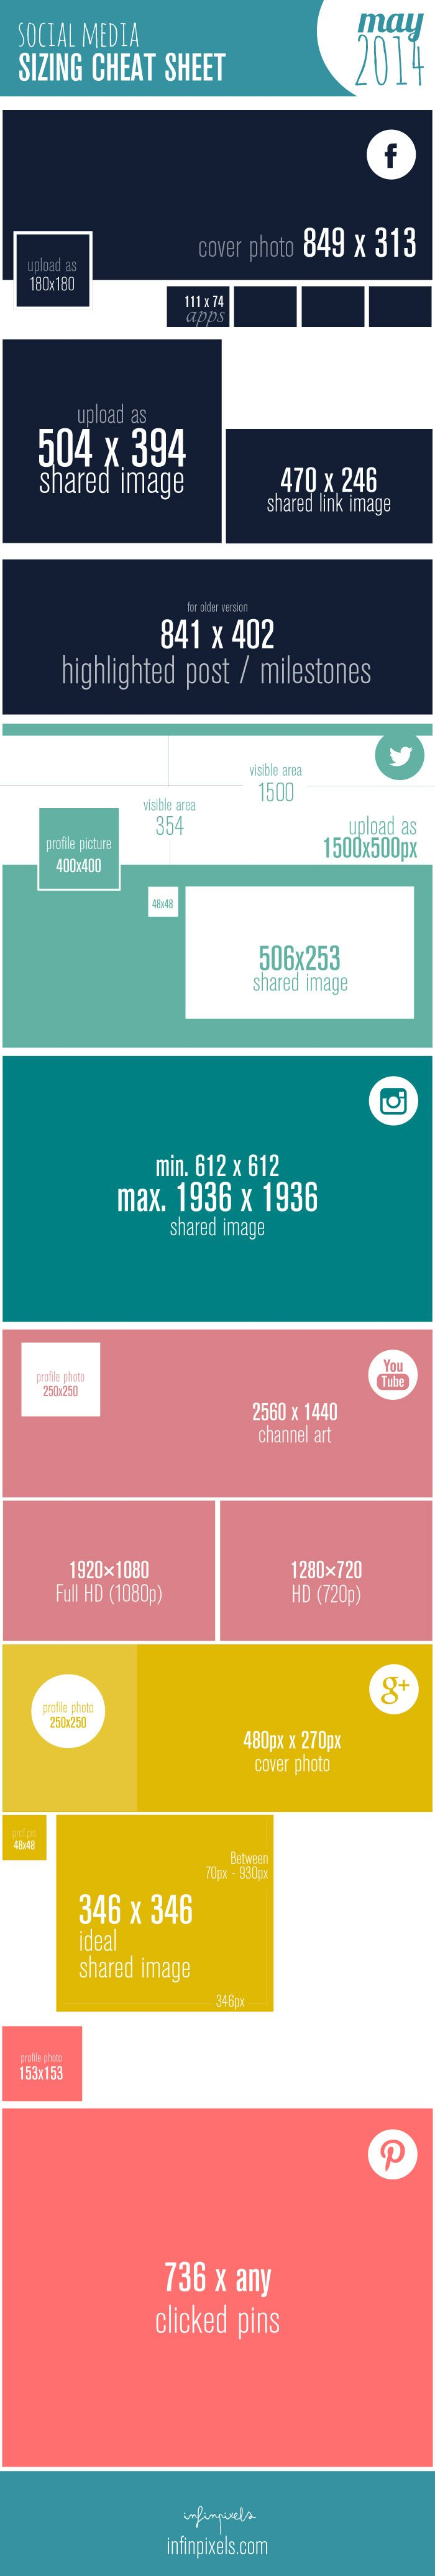 Facebook, Twitter, Instagram, YouTube, Pinterest – Social Media Image Cheat Sheet #Infographic | via #BornToBeSocial - Pinterest Marketing